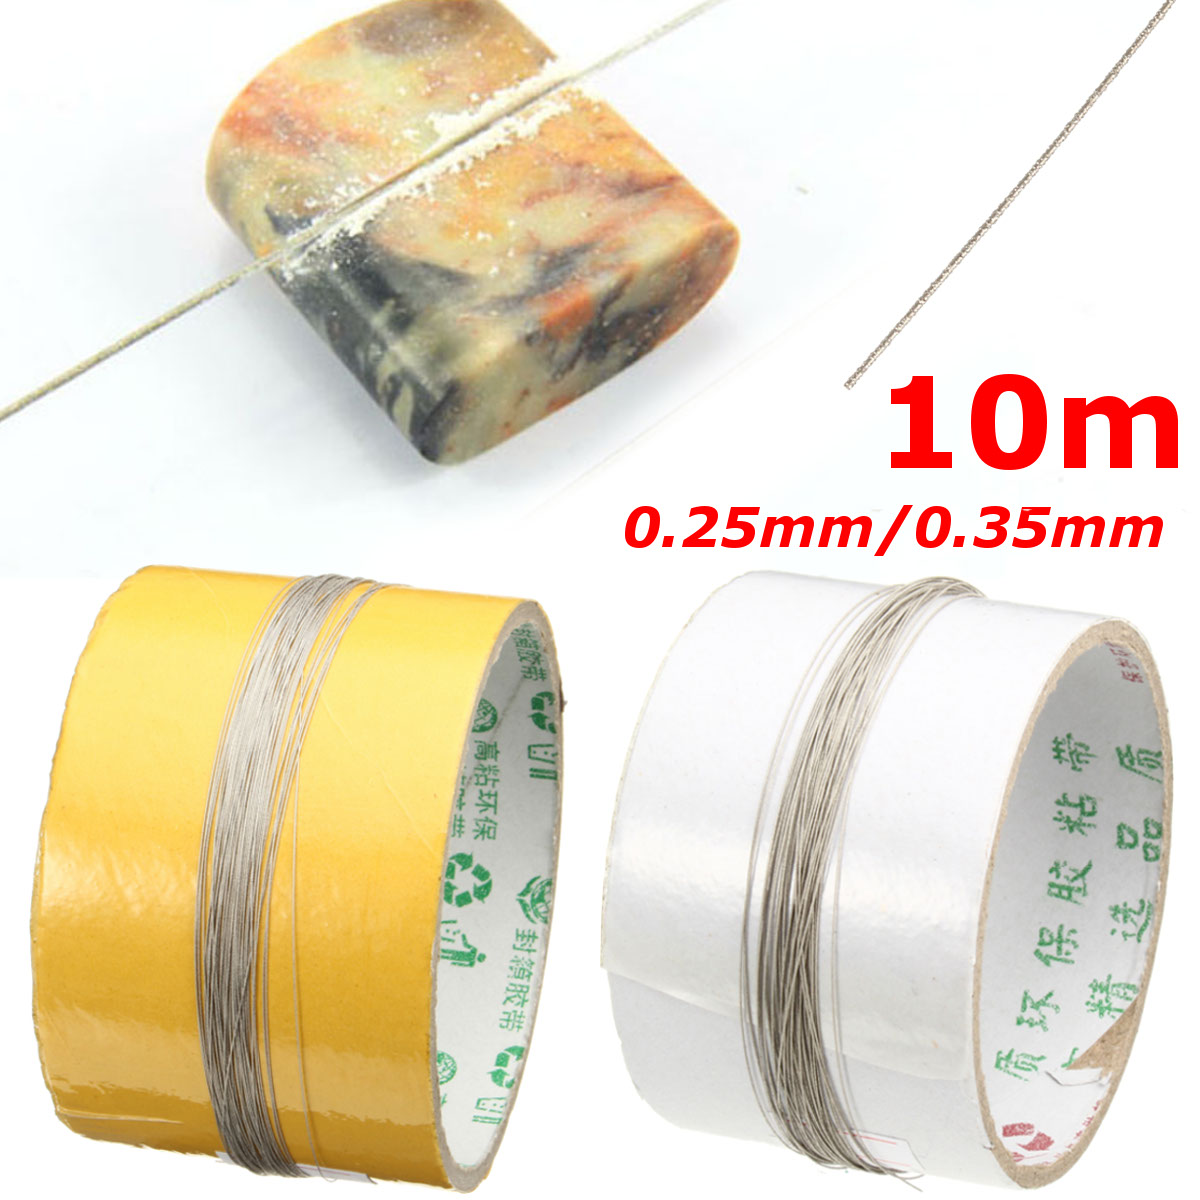 10m Length DIY Coping Cutting Saw Blades 0.35mm Diamond Cutting Wire Metal Wire Diamond Emery Jade Metal Stone Glass